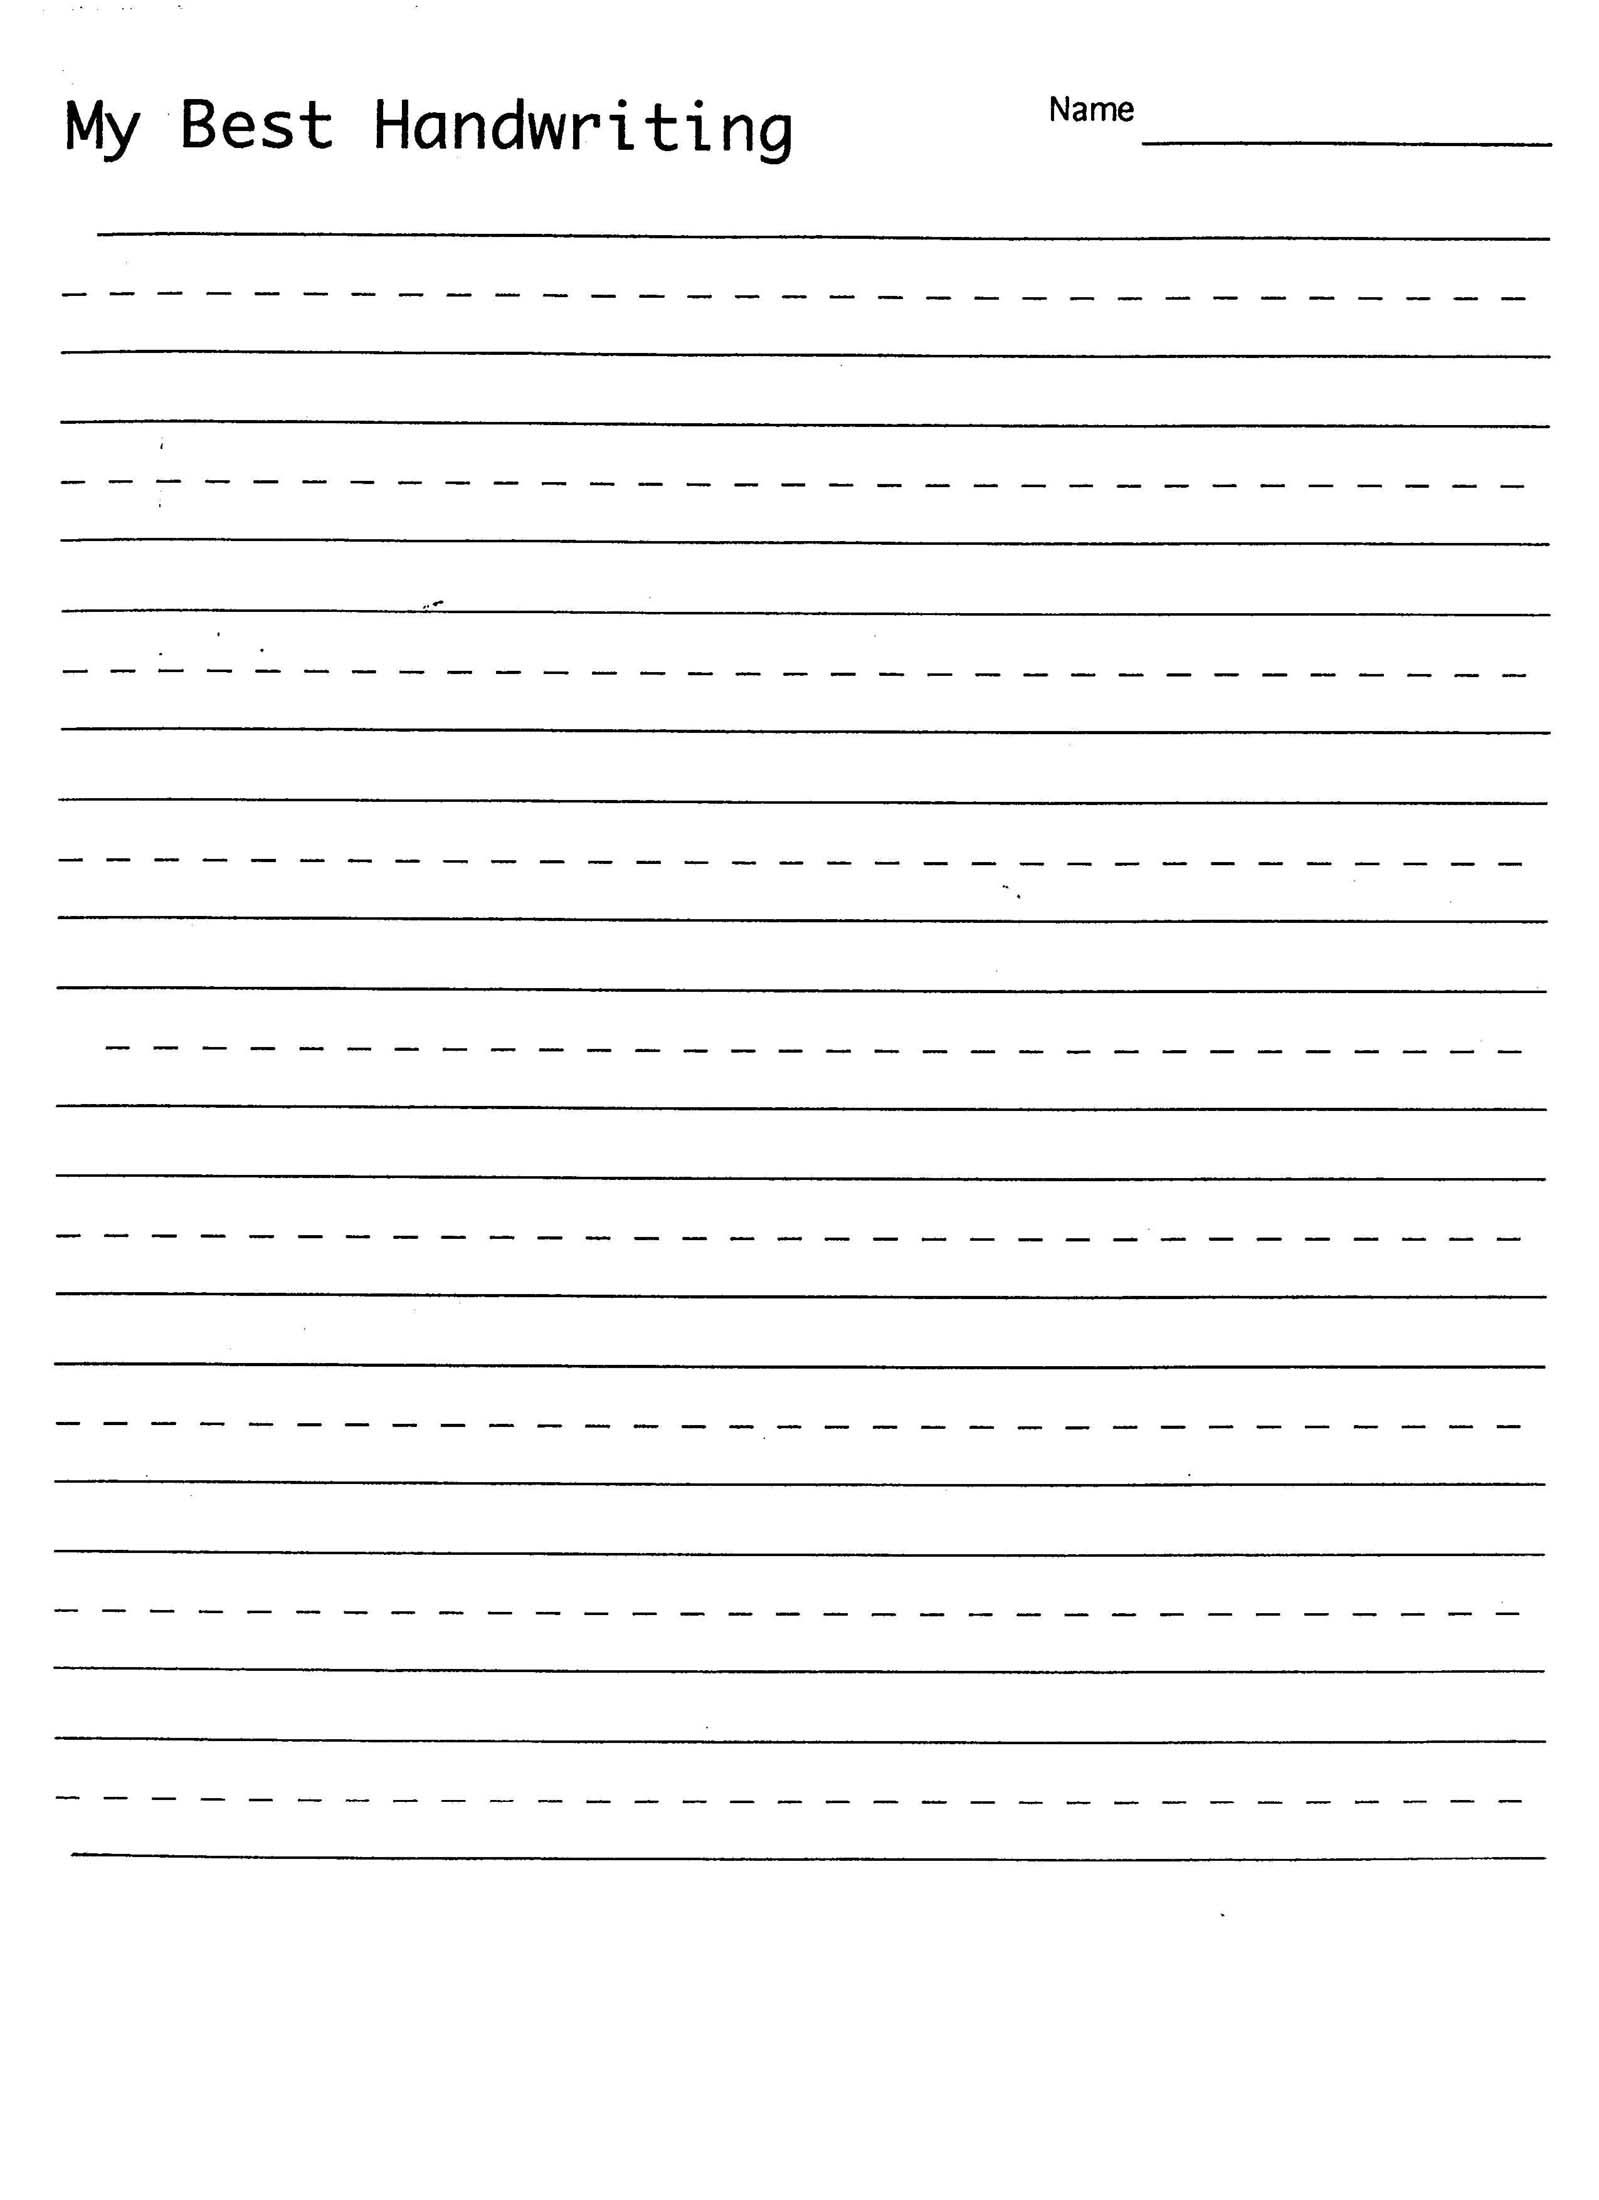 Handwriting Practice Sheet | 1st Grade Handwriting ...